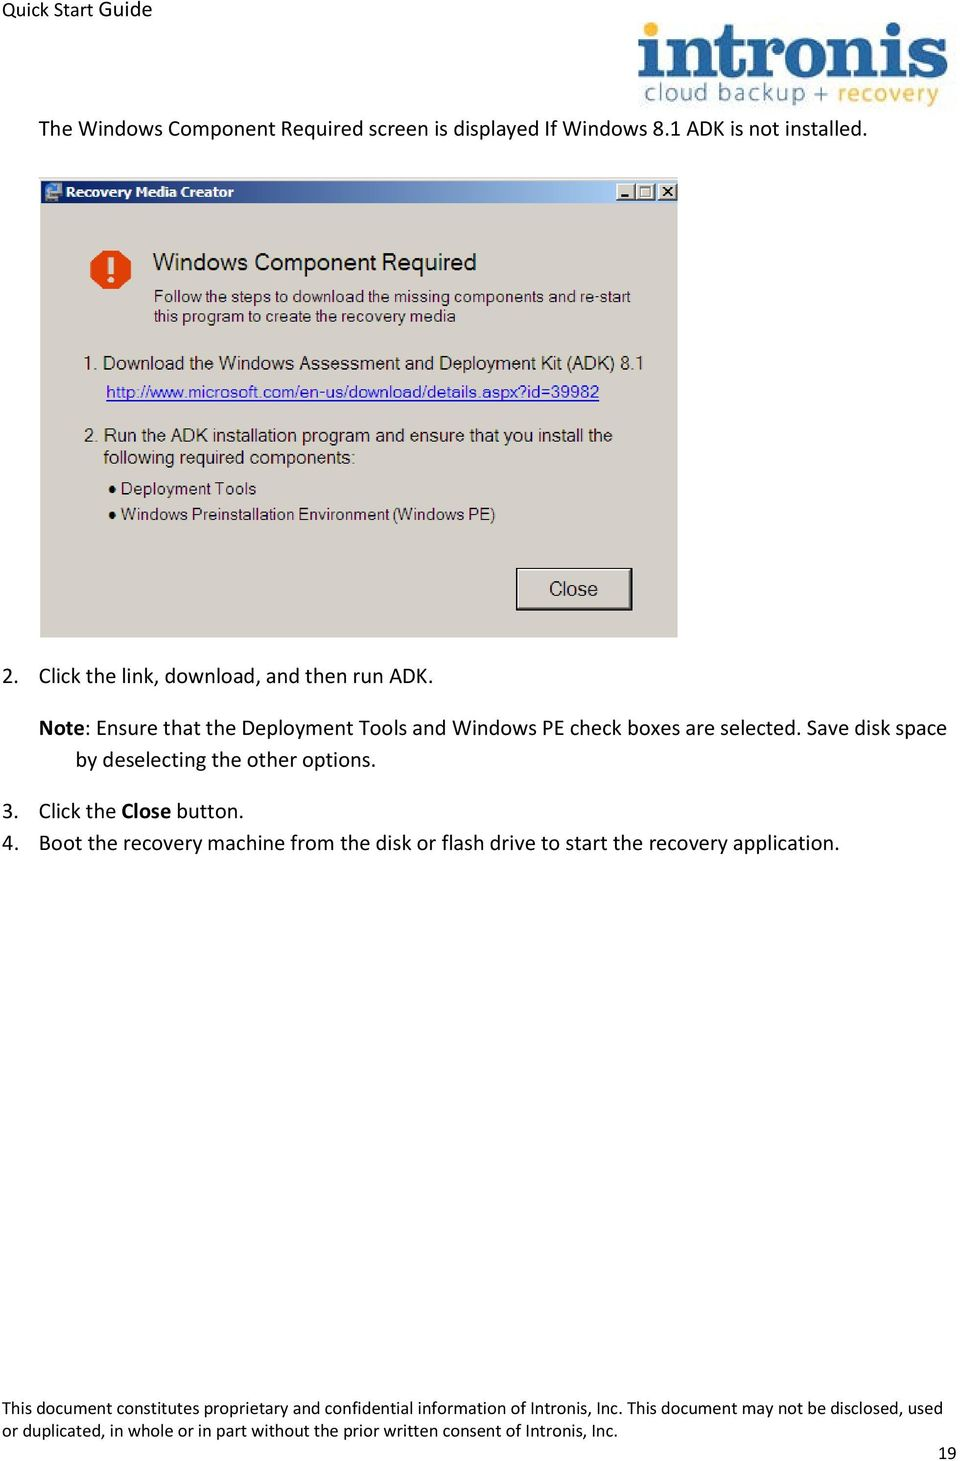 Note: Ensure that the Deployment Tools and Windows PE check boxes are selected.